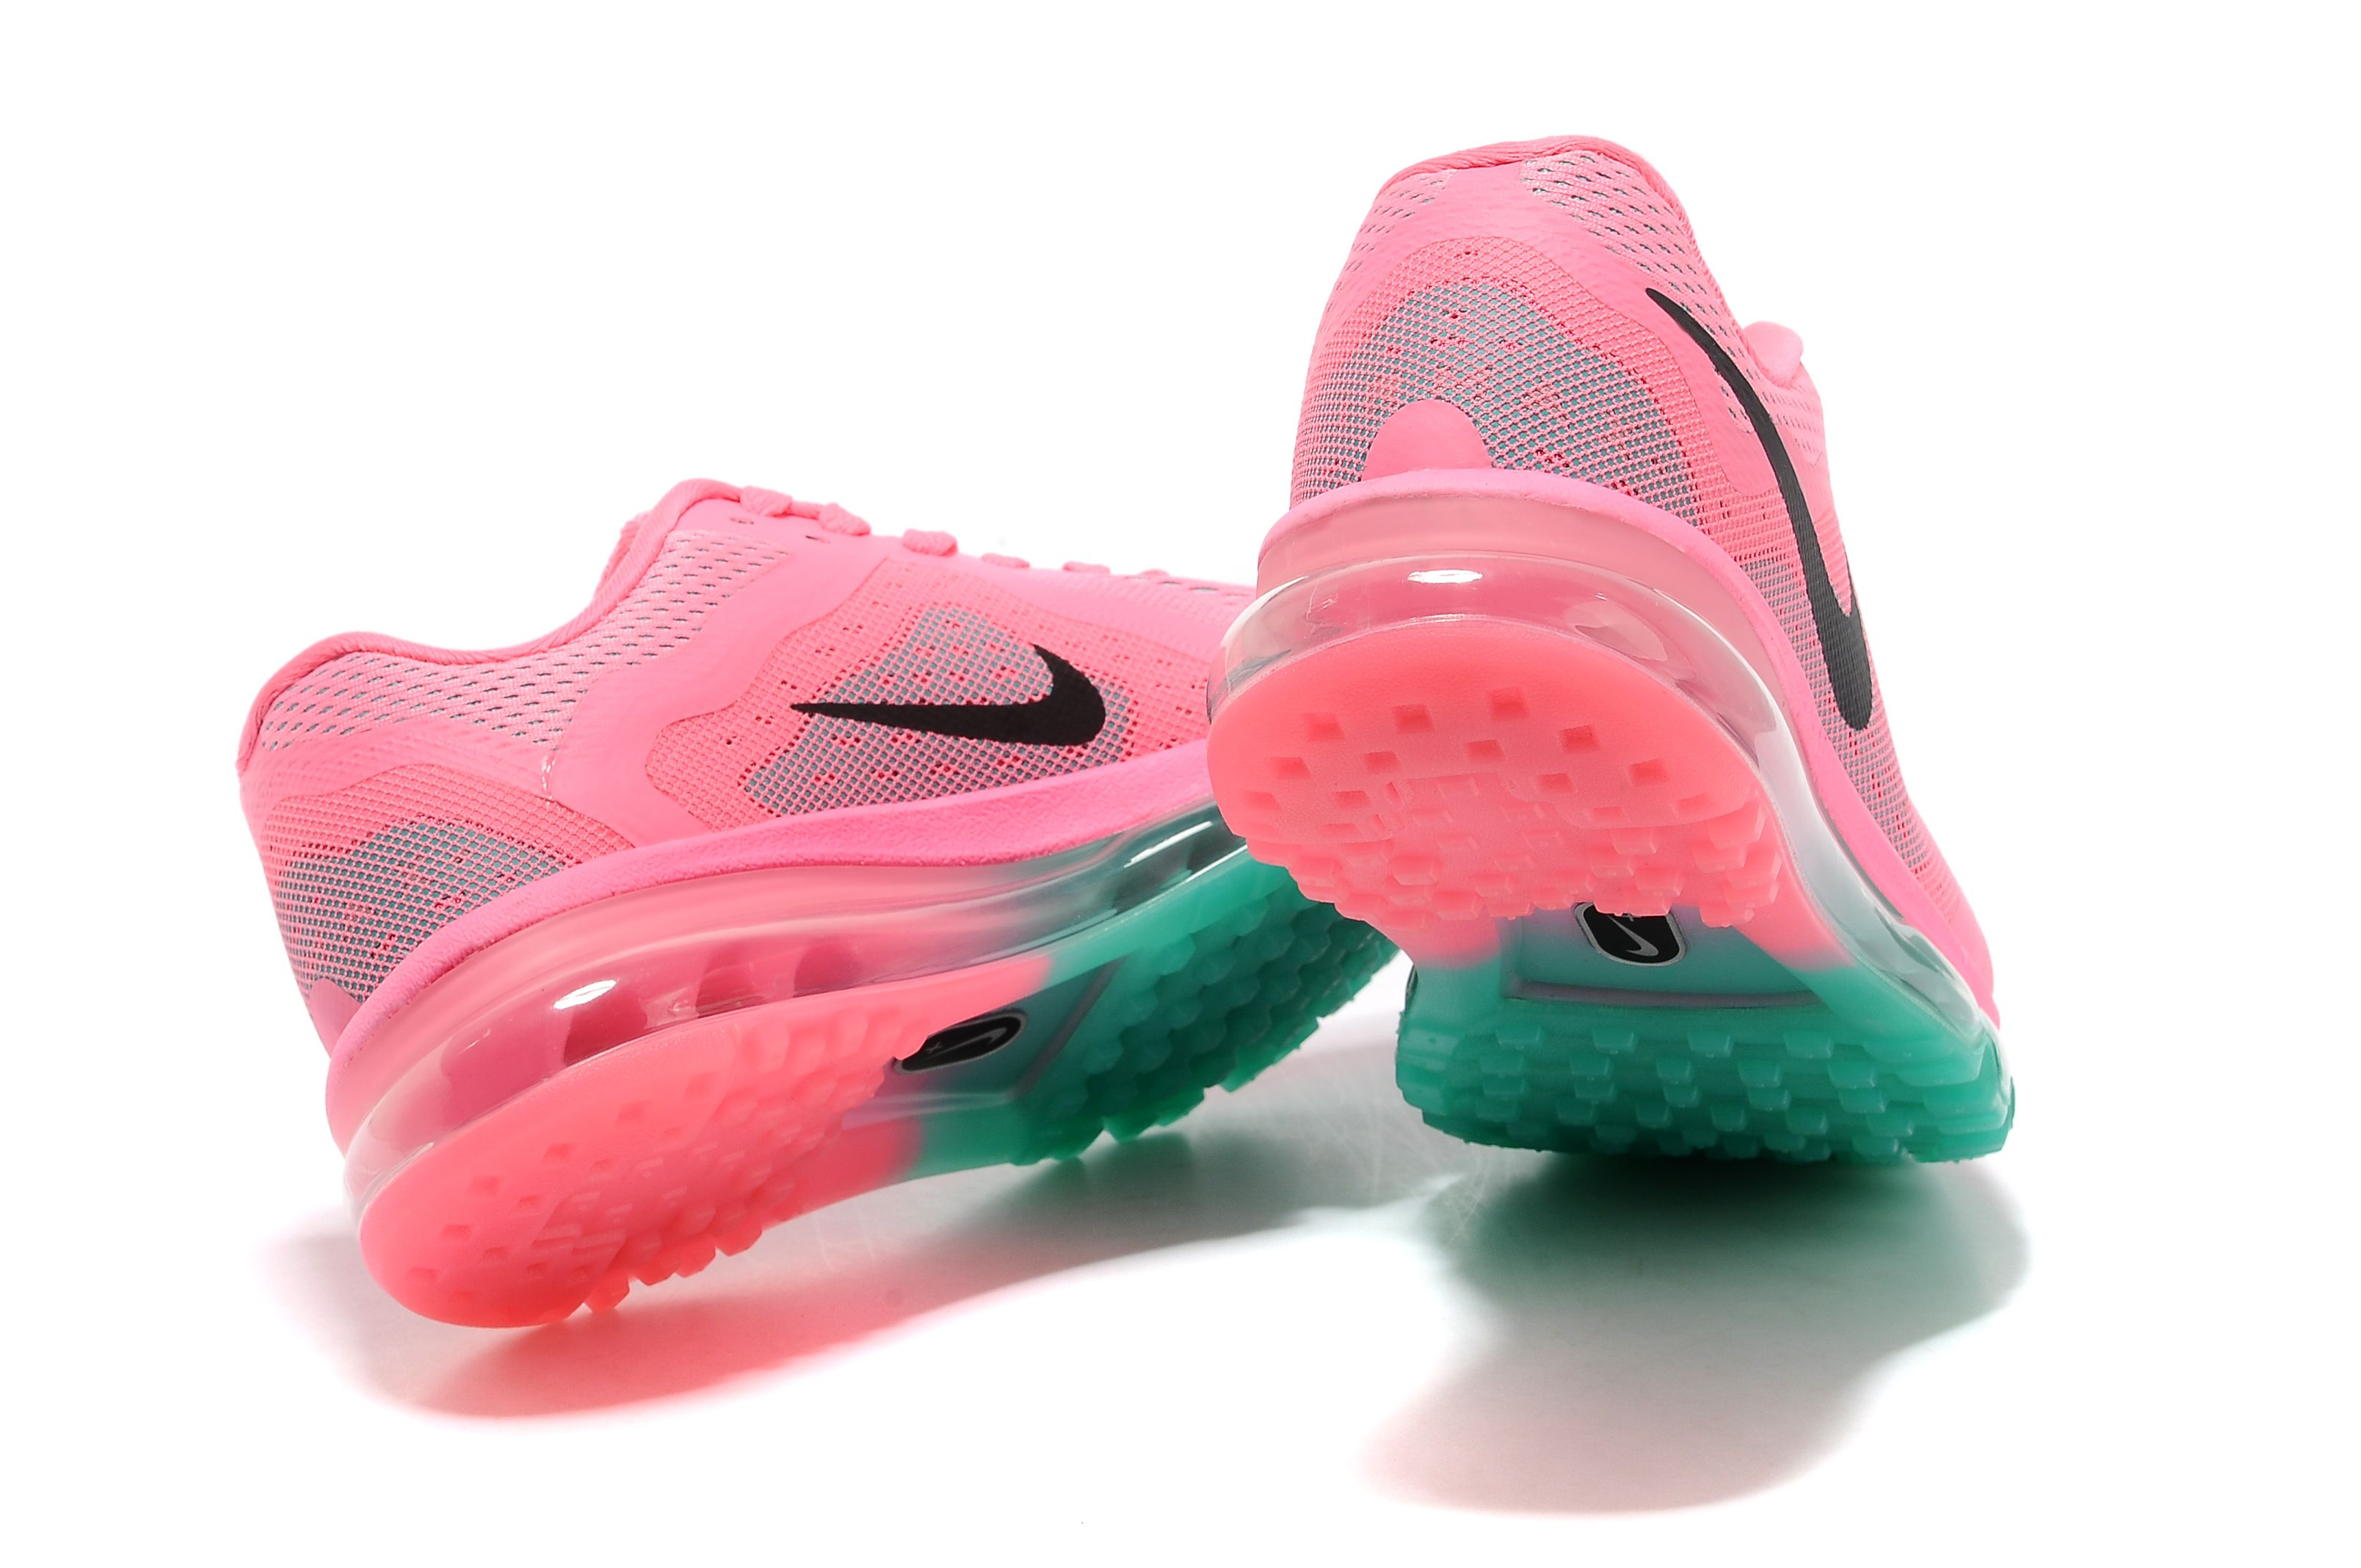 new style 3e02a ae2df Nike Air Max 2014 Womens Running Shoes Pink Black Green